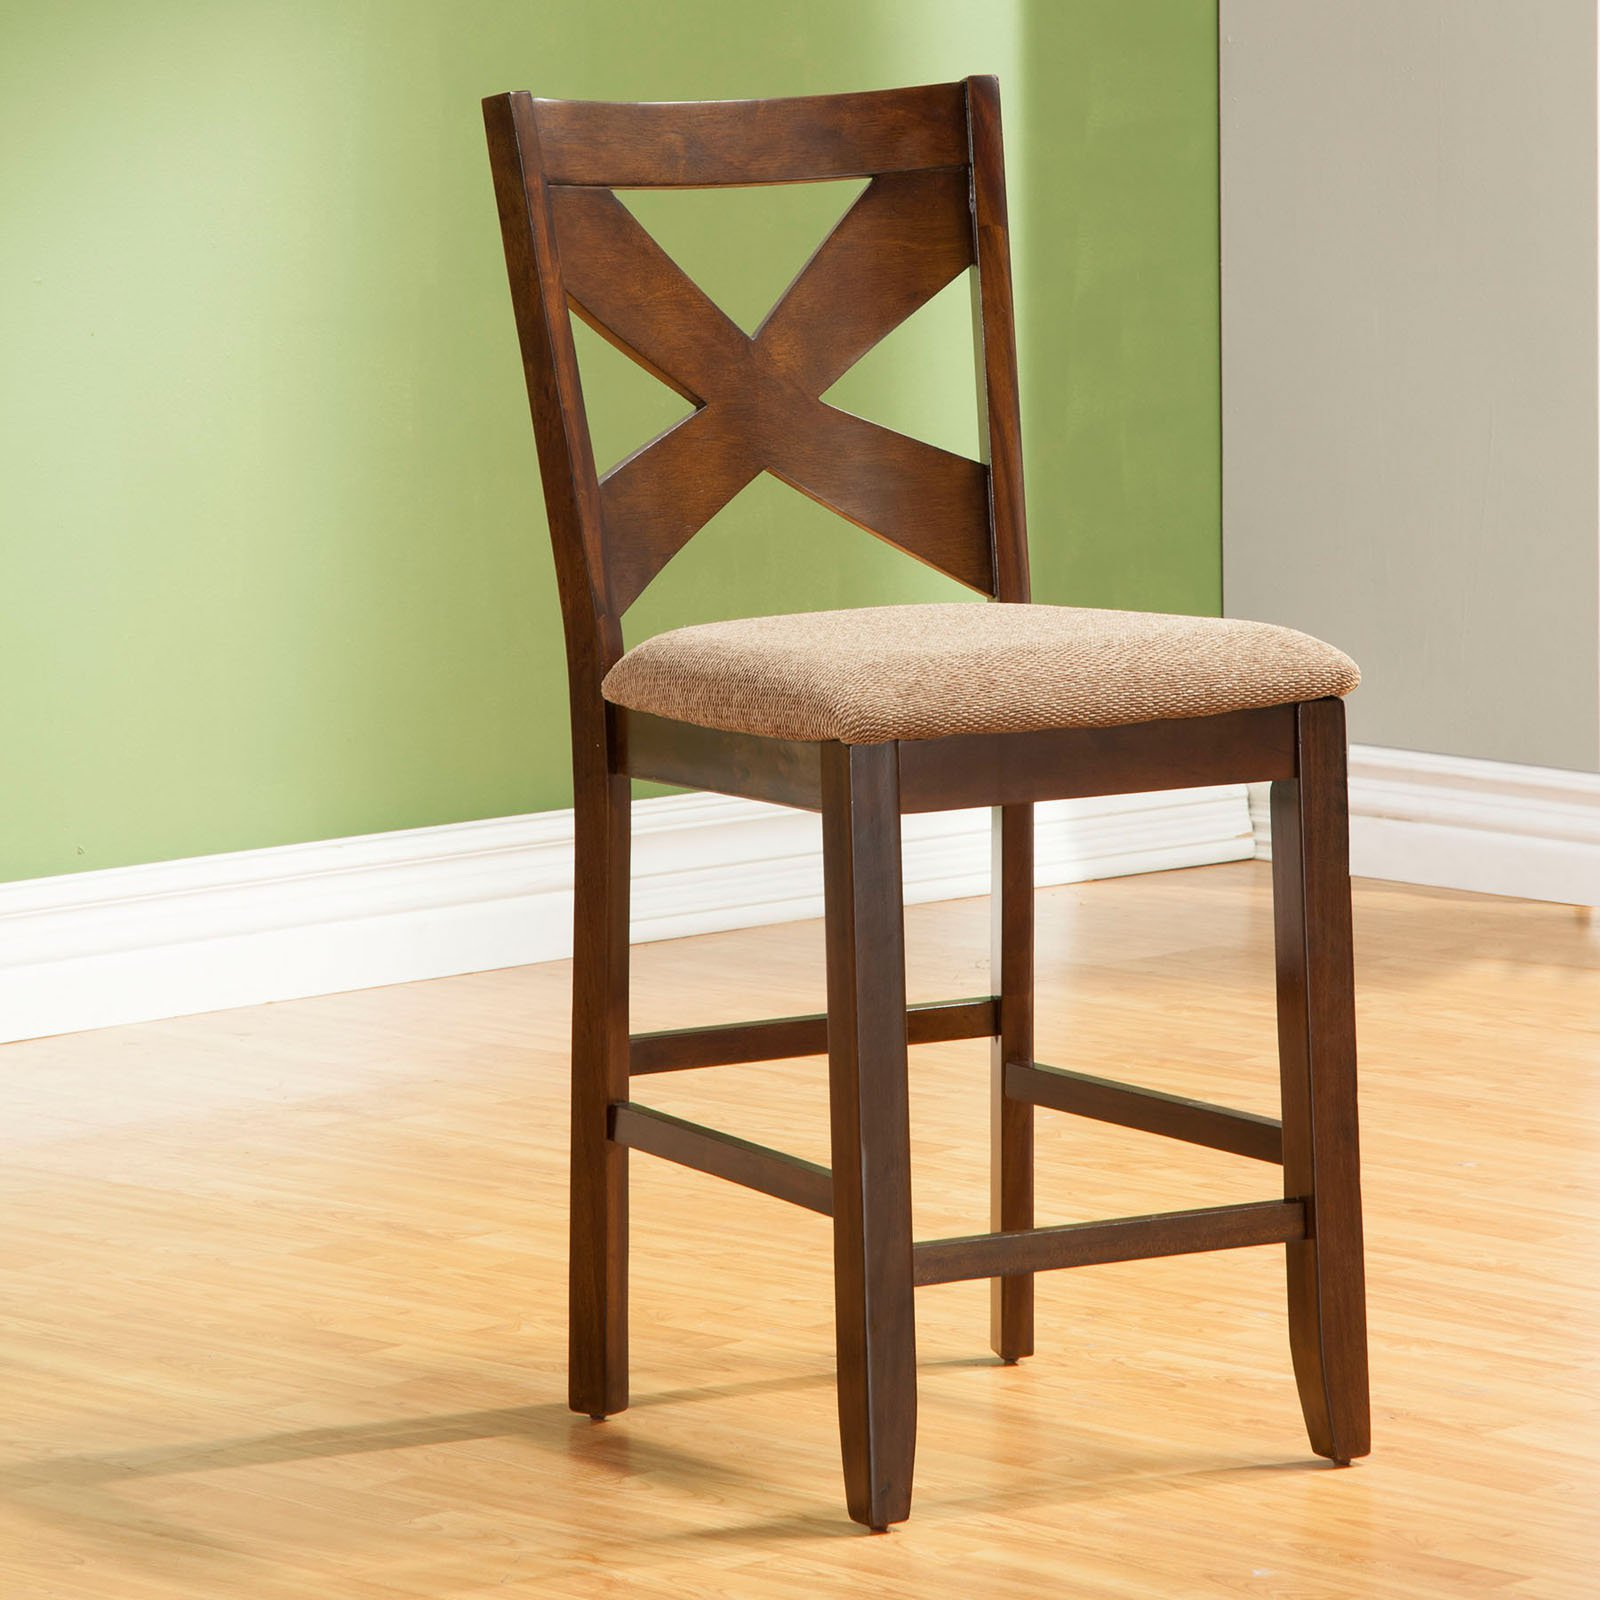 Ordinaire Alpine Furniture Albany Counter Height Chairs   Dark Oak   Set Of 2    Walmart.com